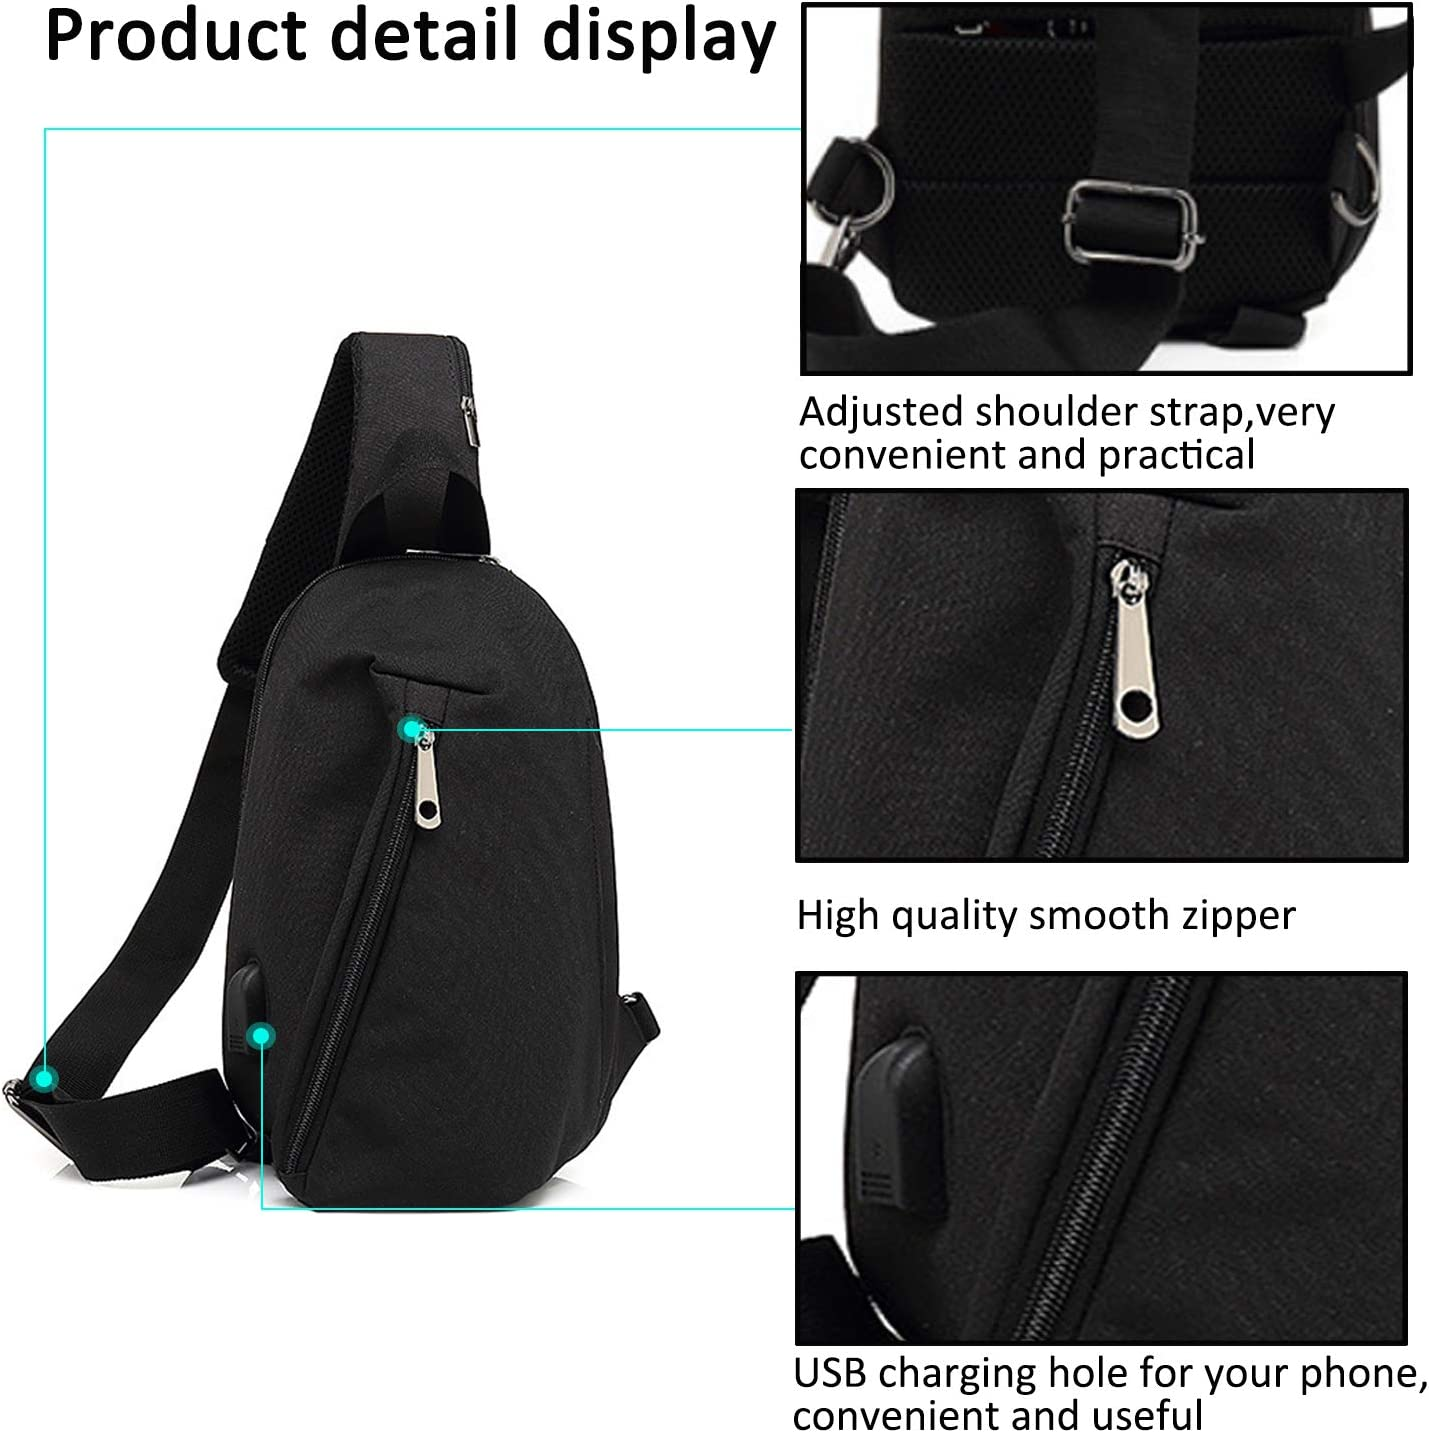 XIMSTAR crossbody chest bag small size mens shoulder bag lightweight sling casual daypack with usb charging port